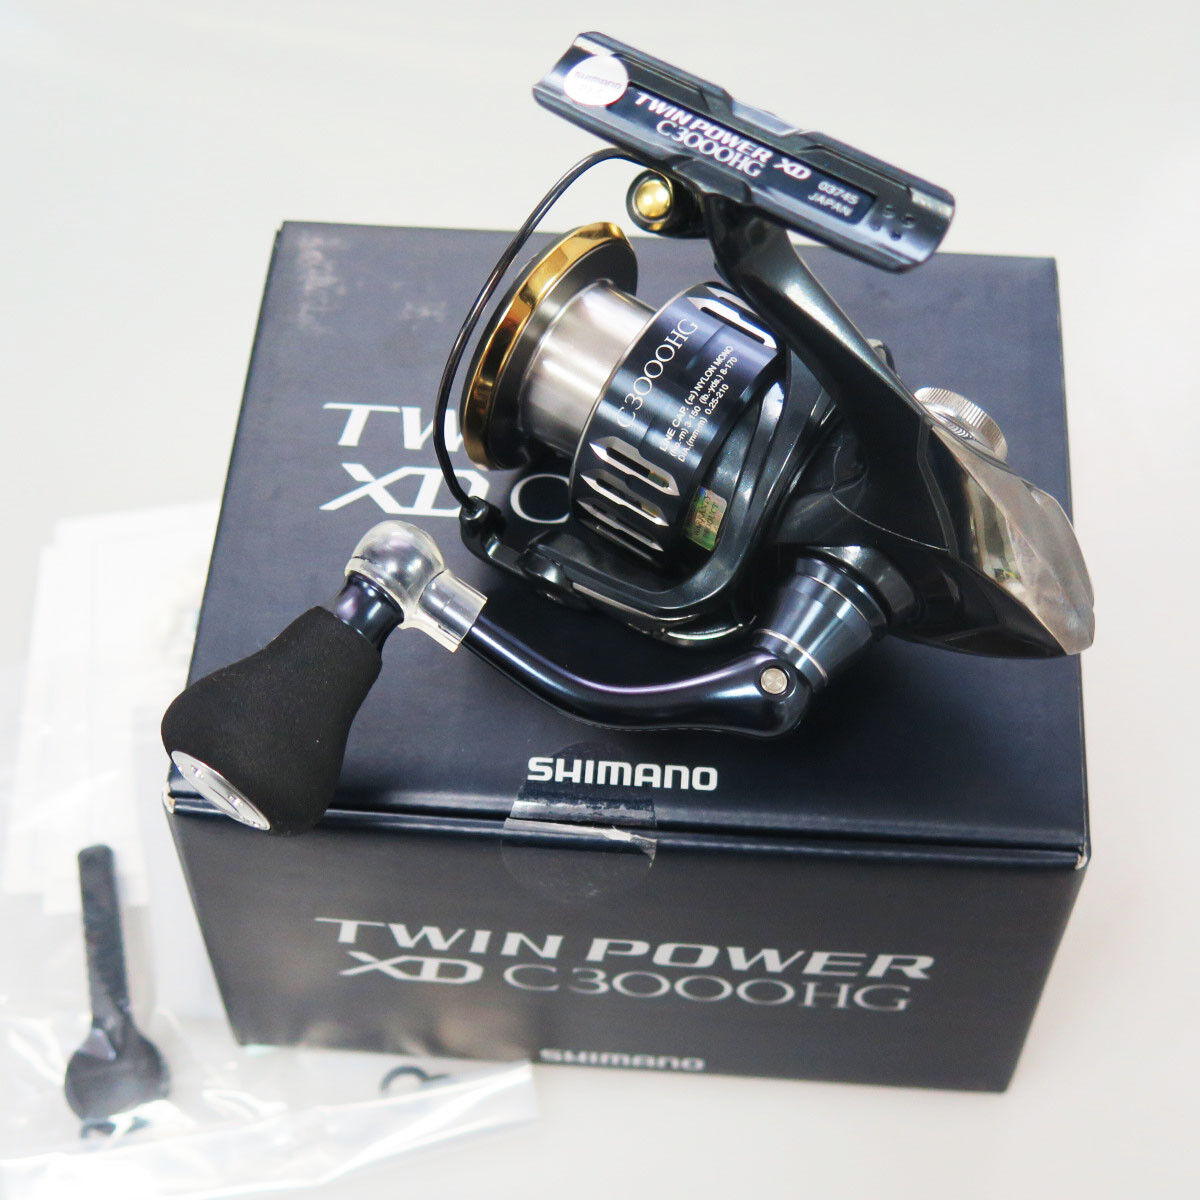 Shimano TWIN POWER XD C3000HG Spinning Cocheretes FedEx Priority 2 días a usa